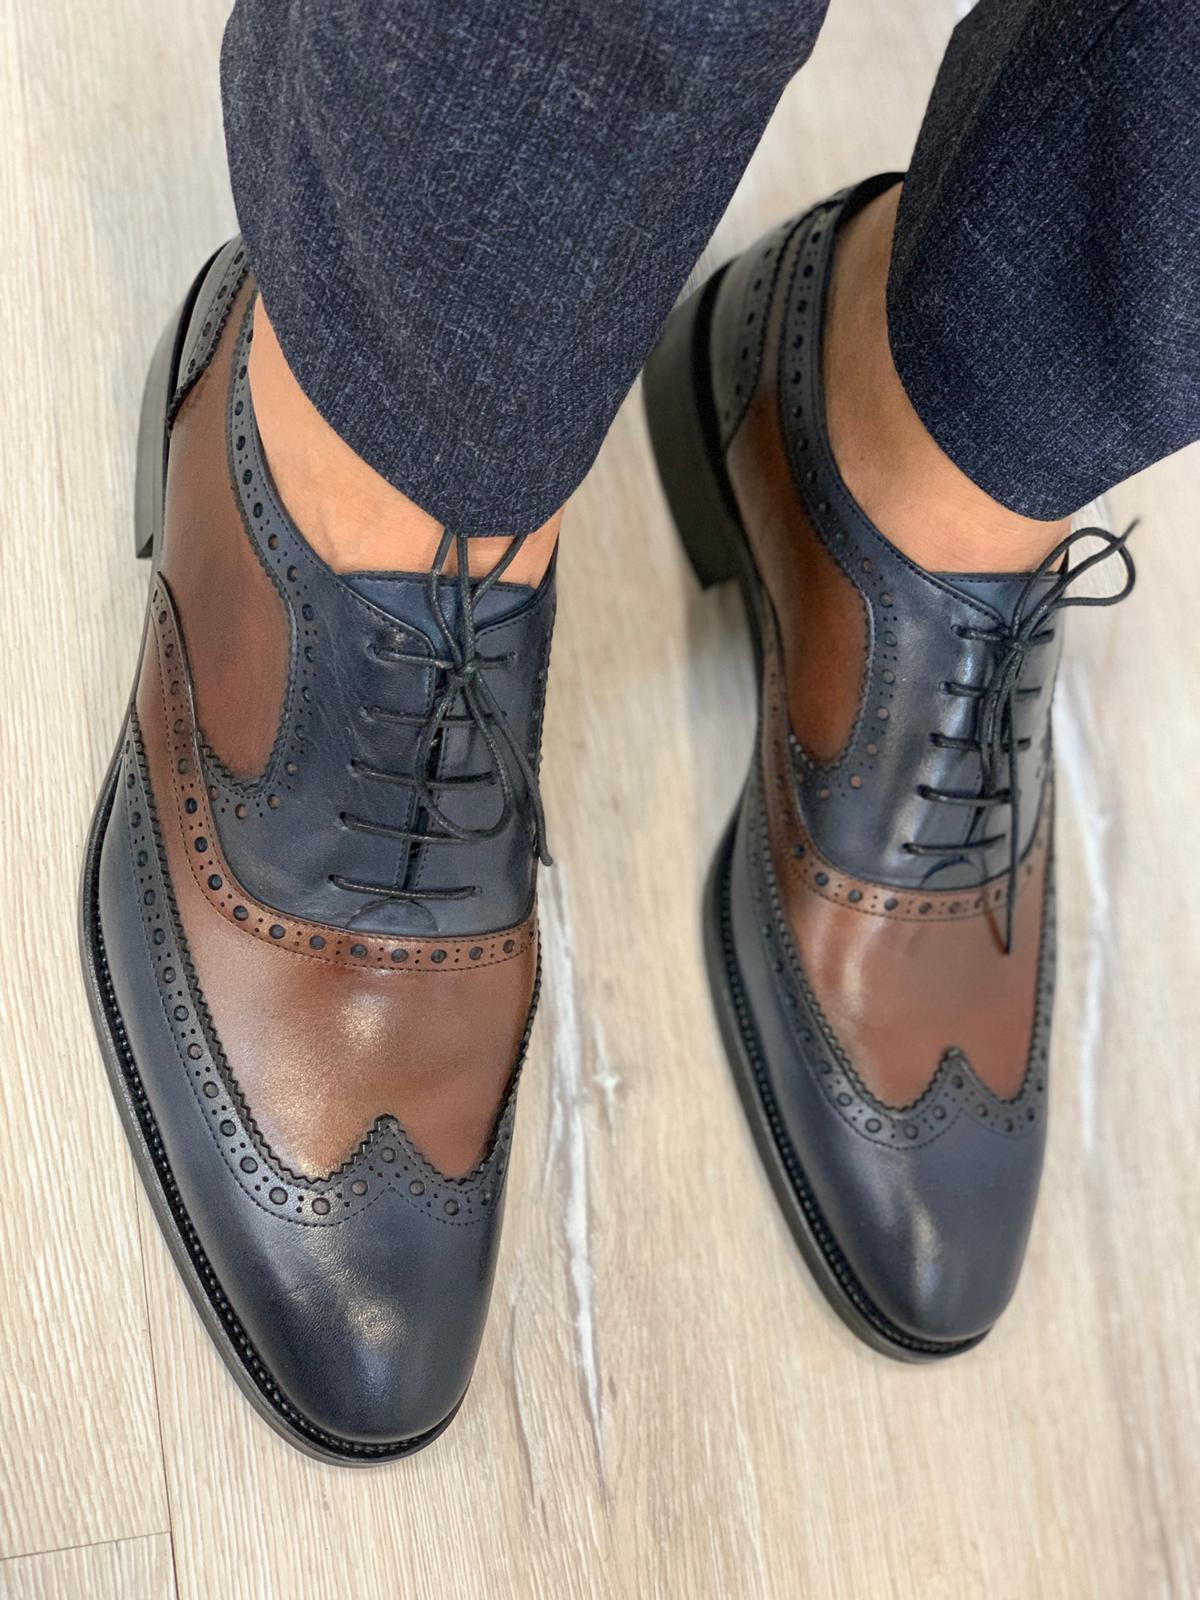 Marc Limited Shoes in Brown/Navy